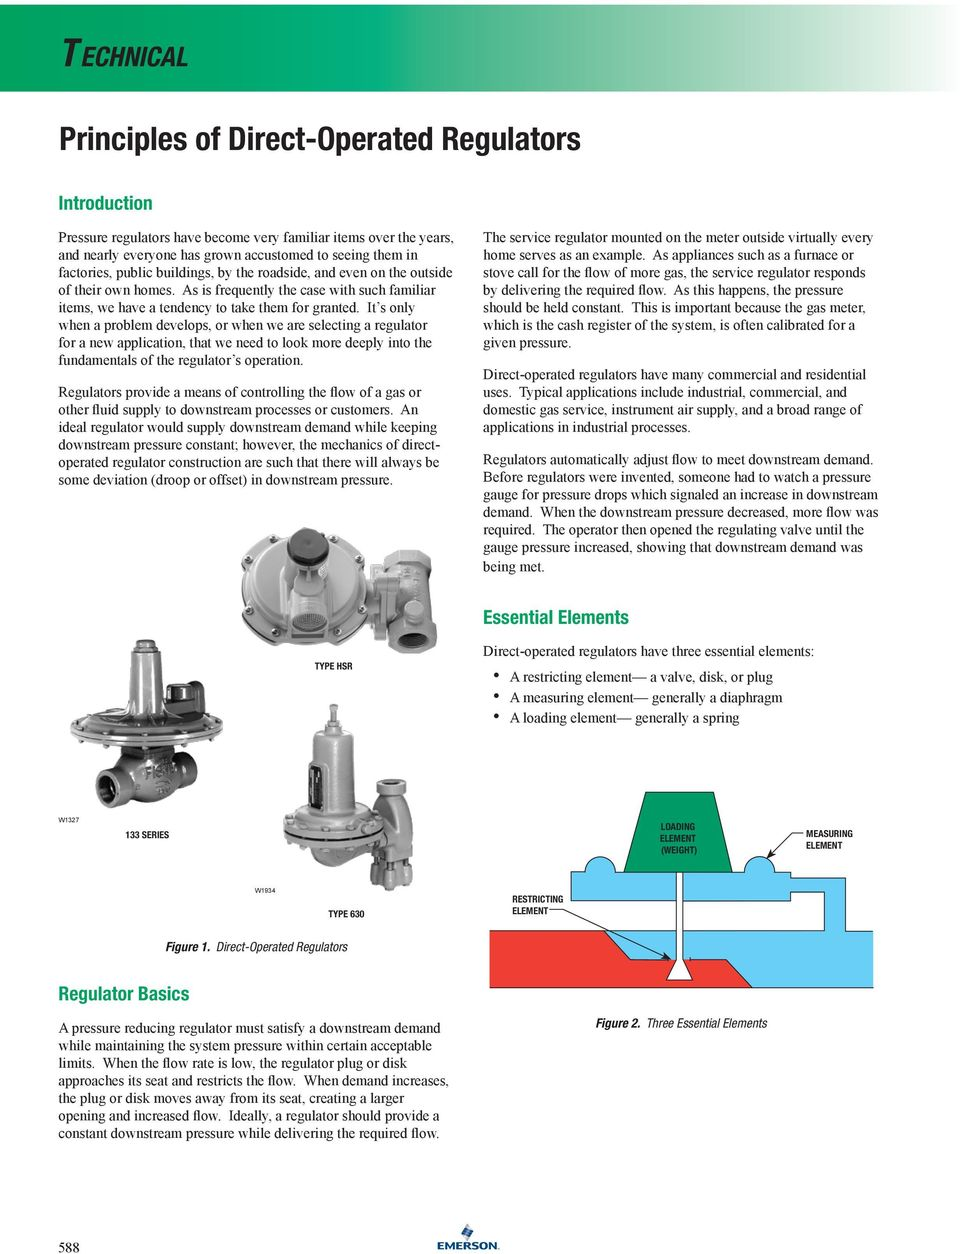 It s only when a problem develops, or when we are selecting a regulator for a new application, that we need to look more deeply into the fundamentals of the regulator s operation.